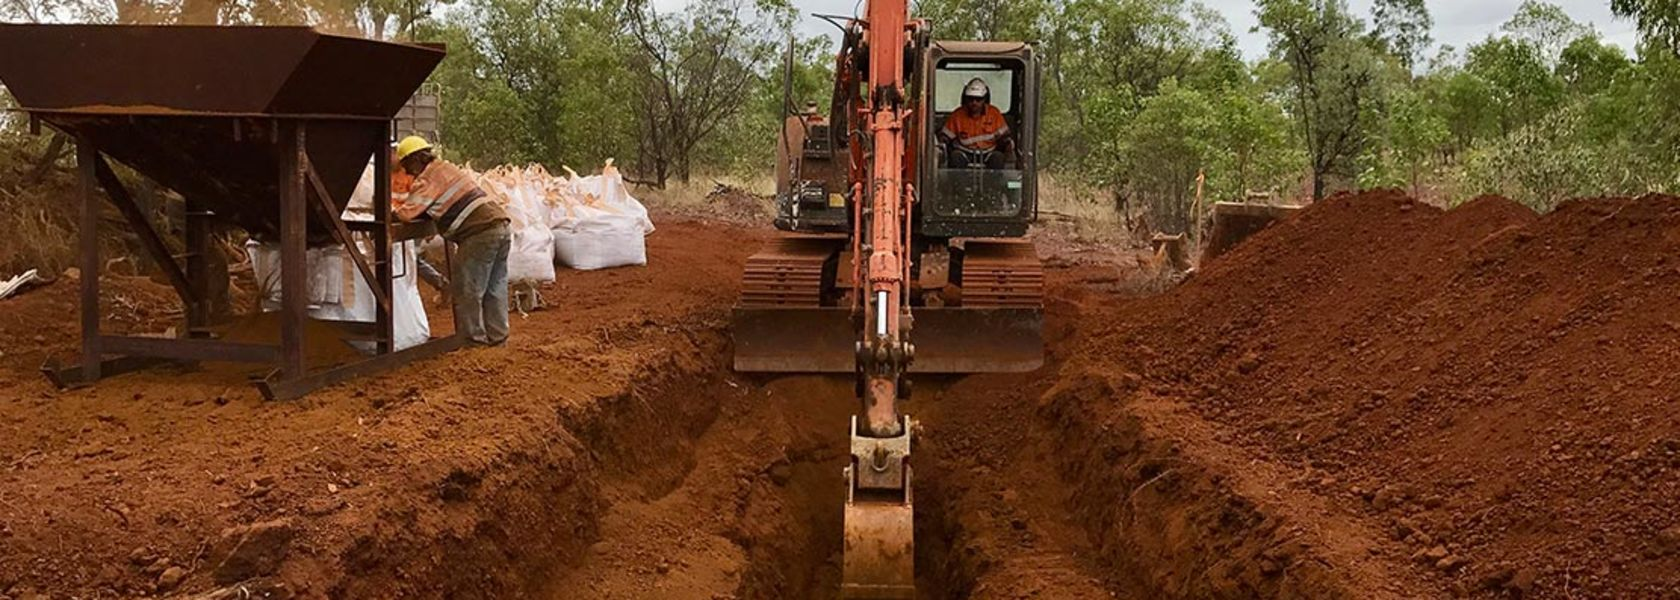 Australian Mines digs in at Greenvale